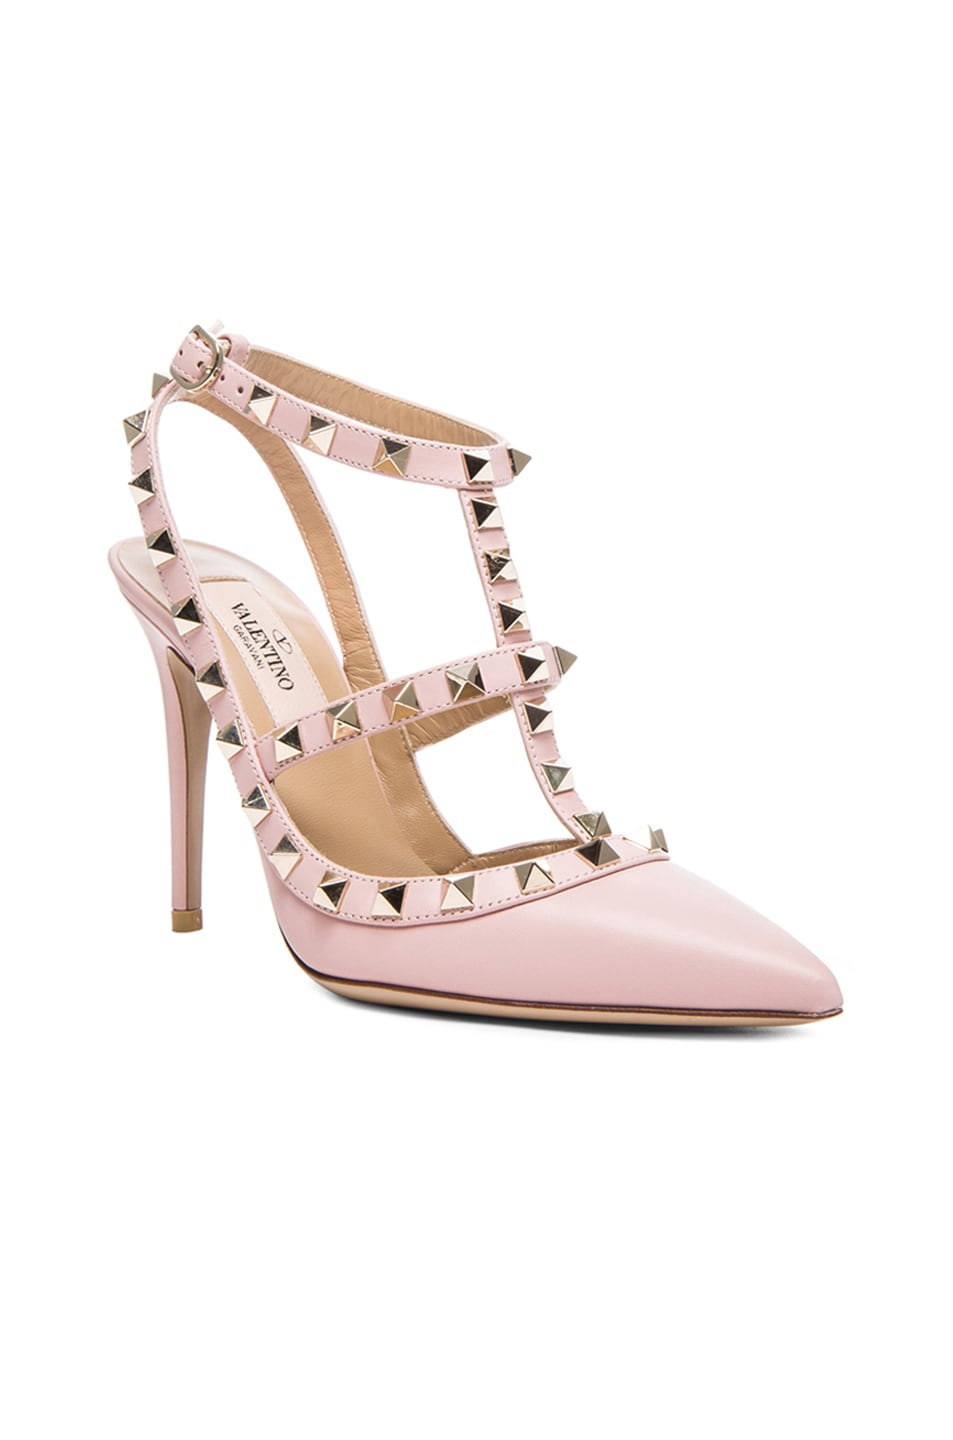 Image 2 of Valentino Rockstud Leather Slingbacks T.100 in Water Rose